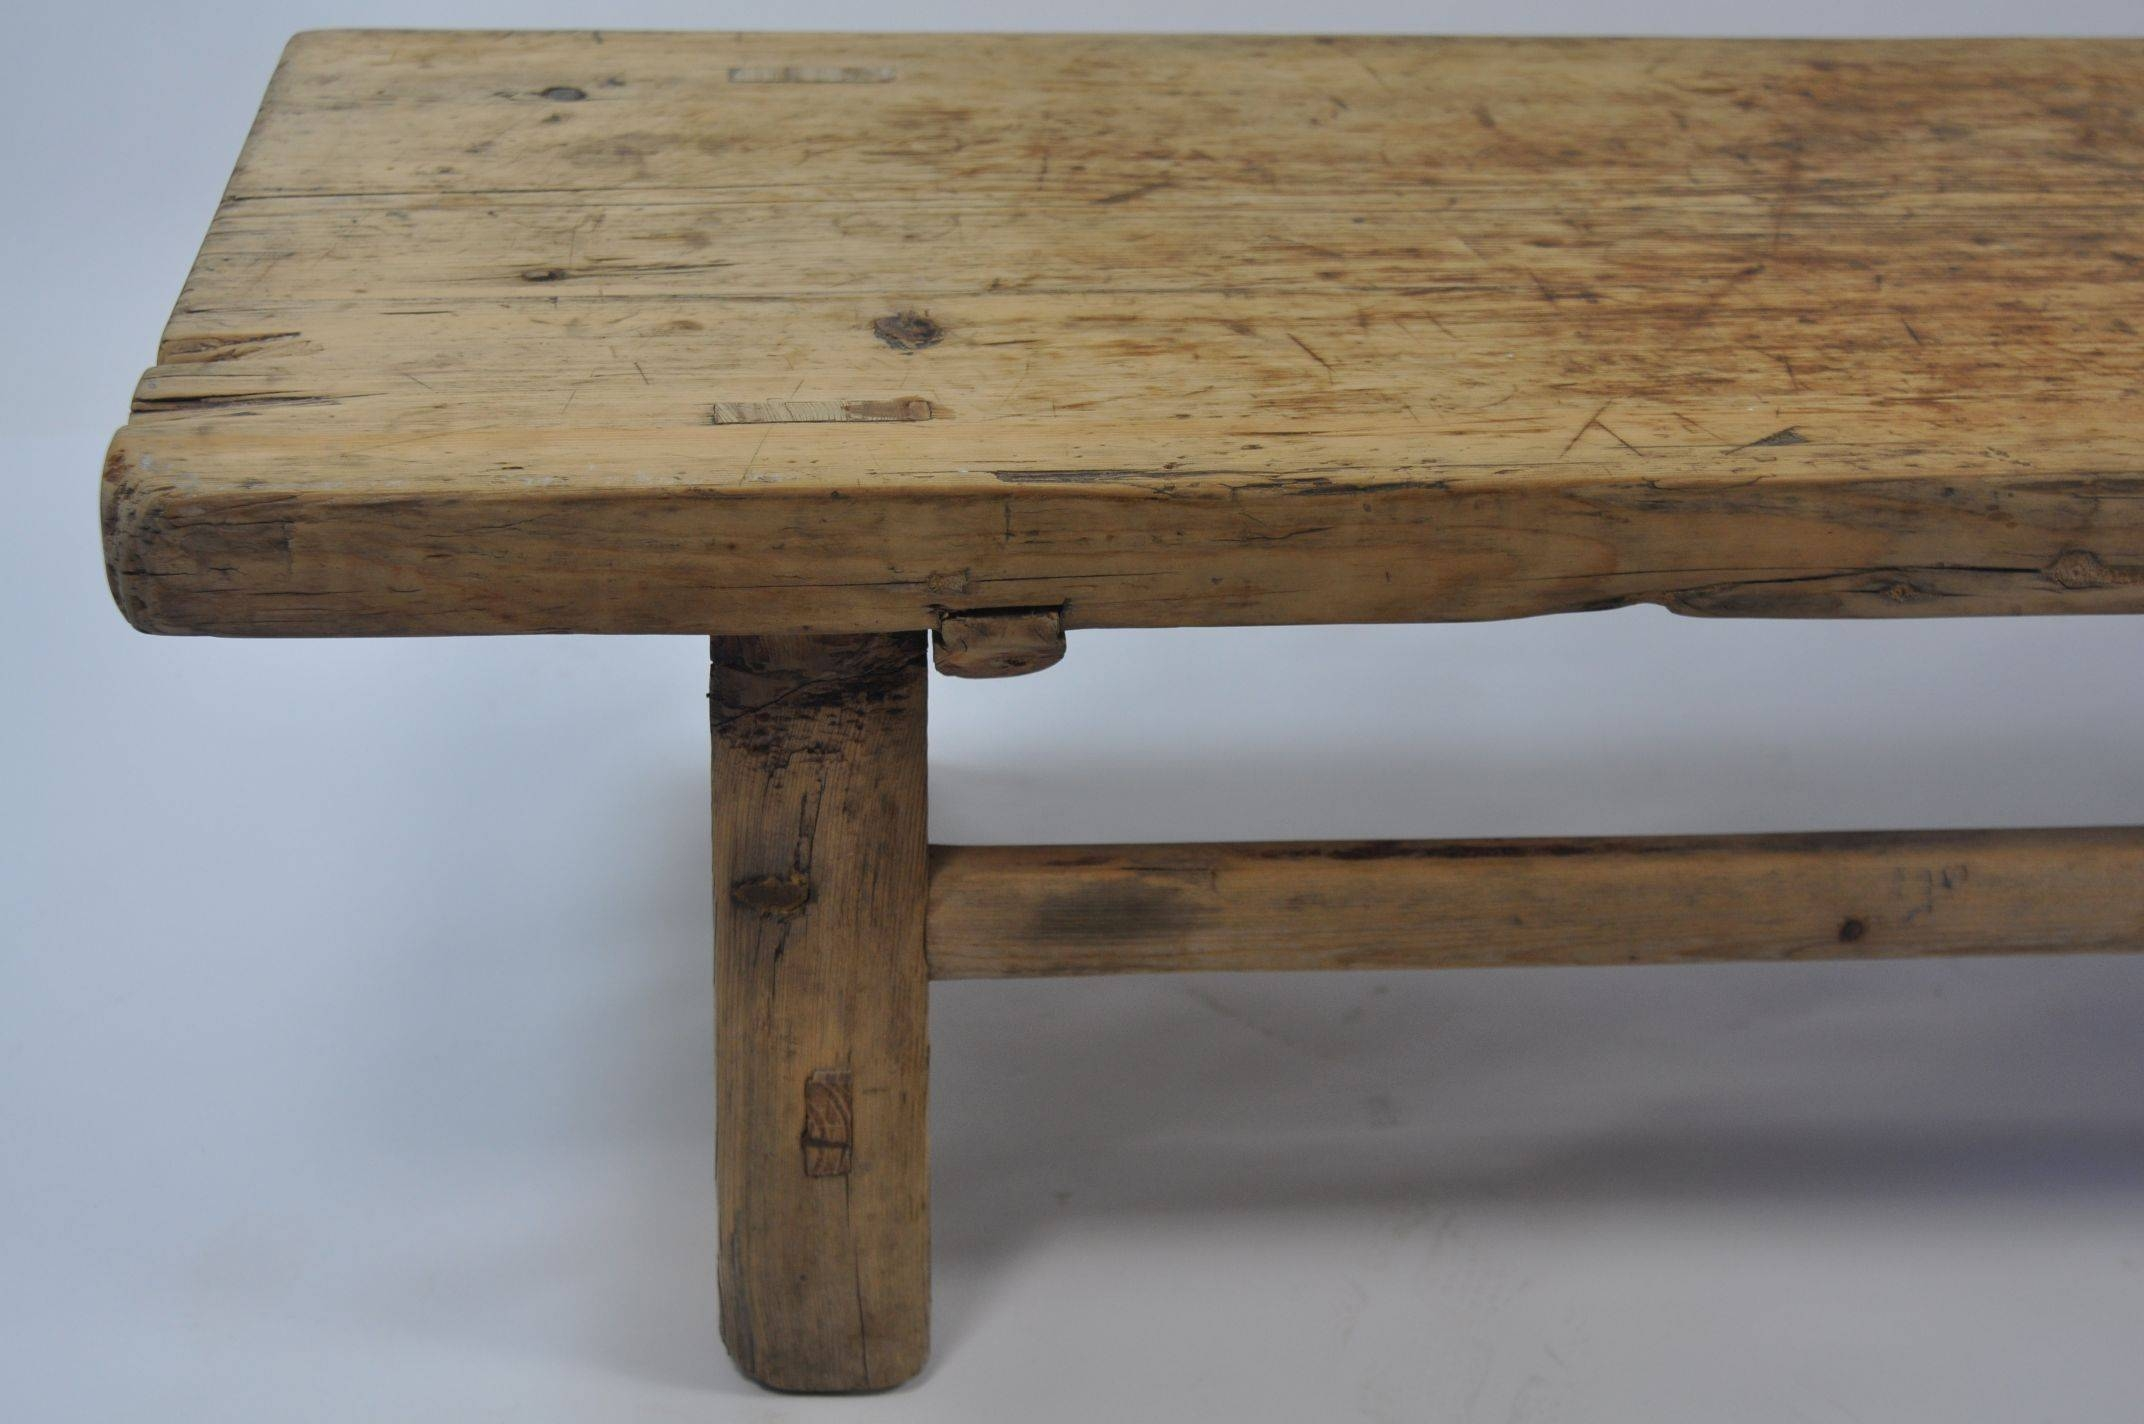 Antique Chinese Pine Coffee Table - Mecox Gardens pertaining to Antique Pine Coffee Tables (Image 3 of 30)